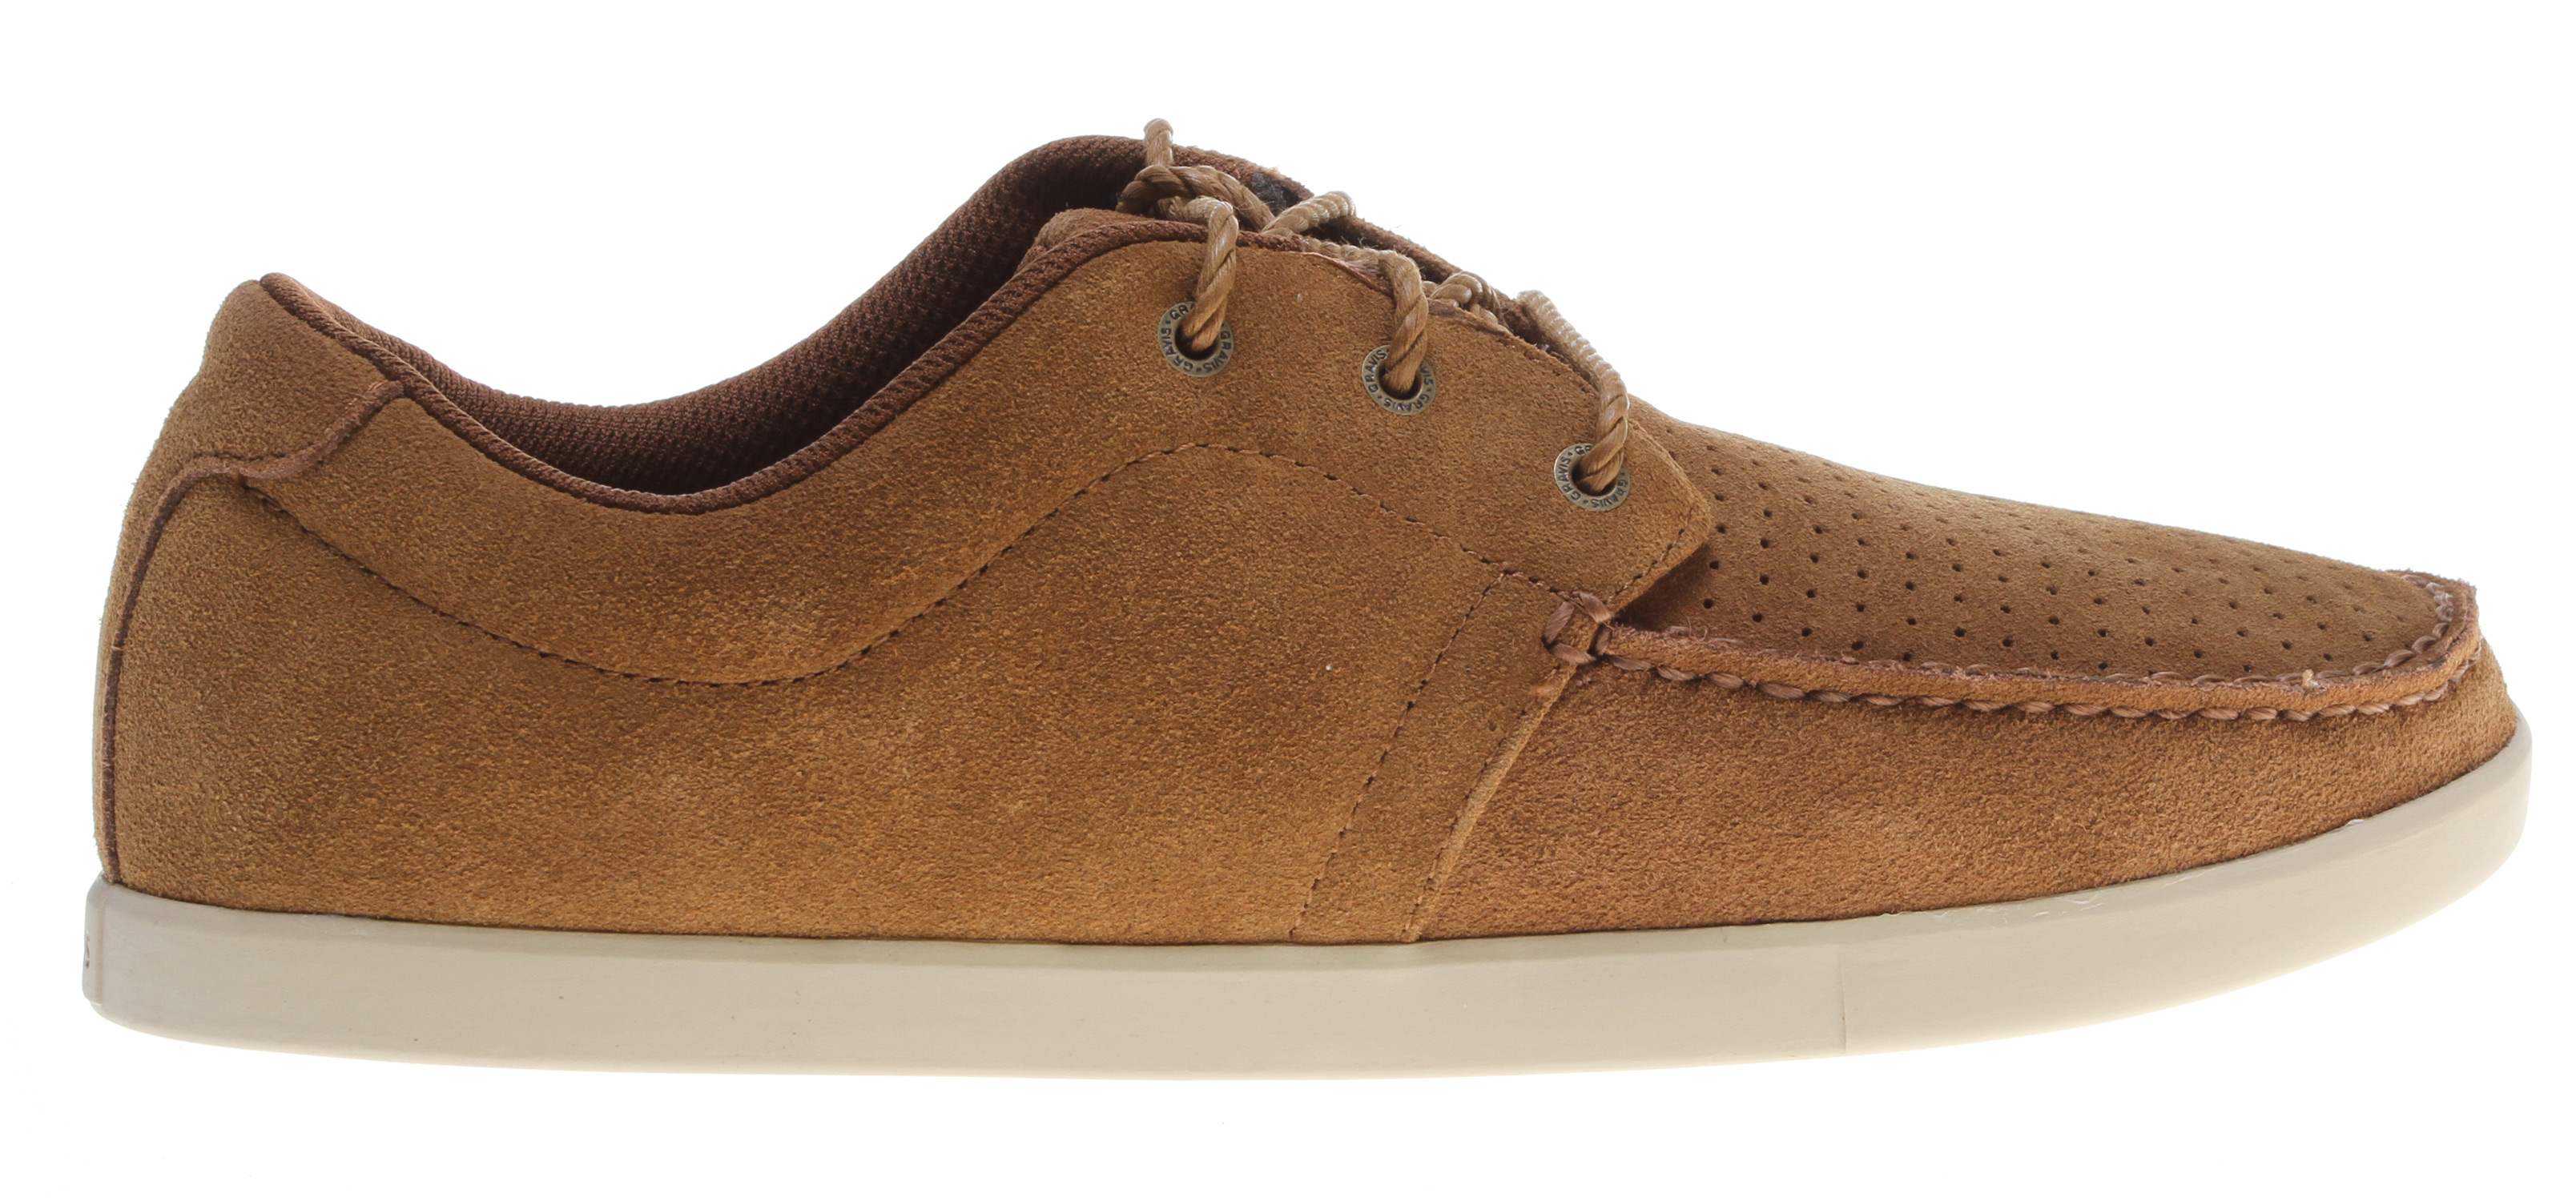 Key Features of the Gravis Skipper Shoes: Premium Suede, And Performance Leather Upper Moccasin Toe Stitch Engineered Stripe Lining Internal Cushioning-Eva, Latex Insole Lightweight High Traction Rubber Outsole - $49.95